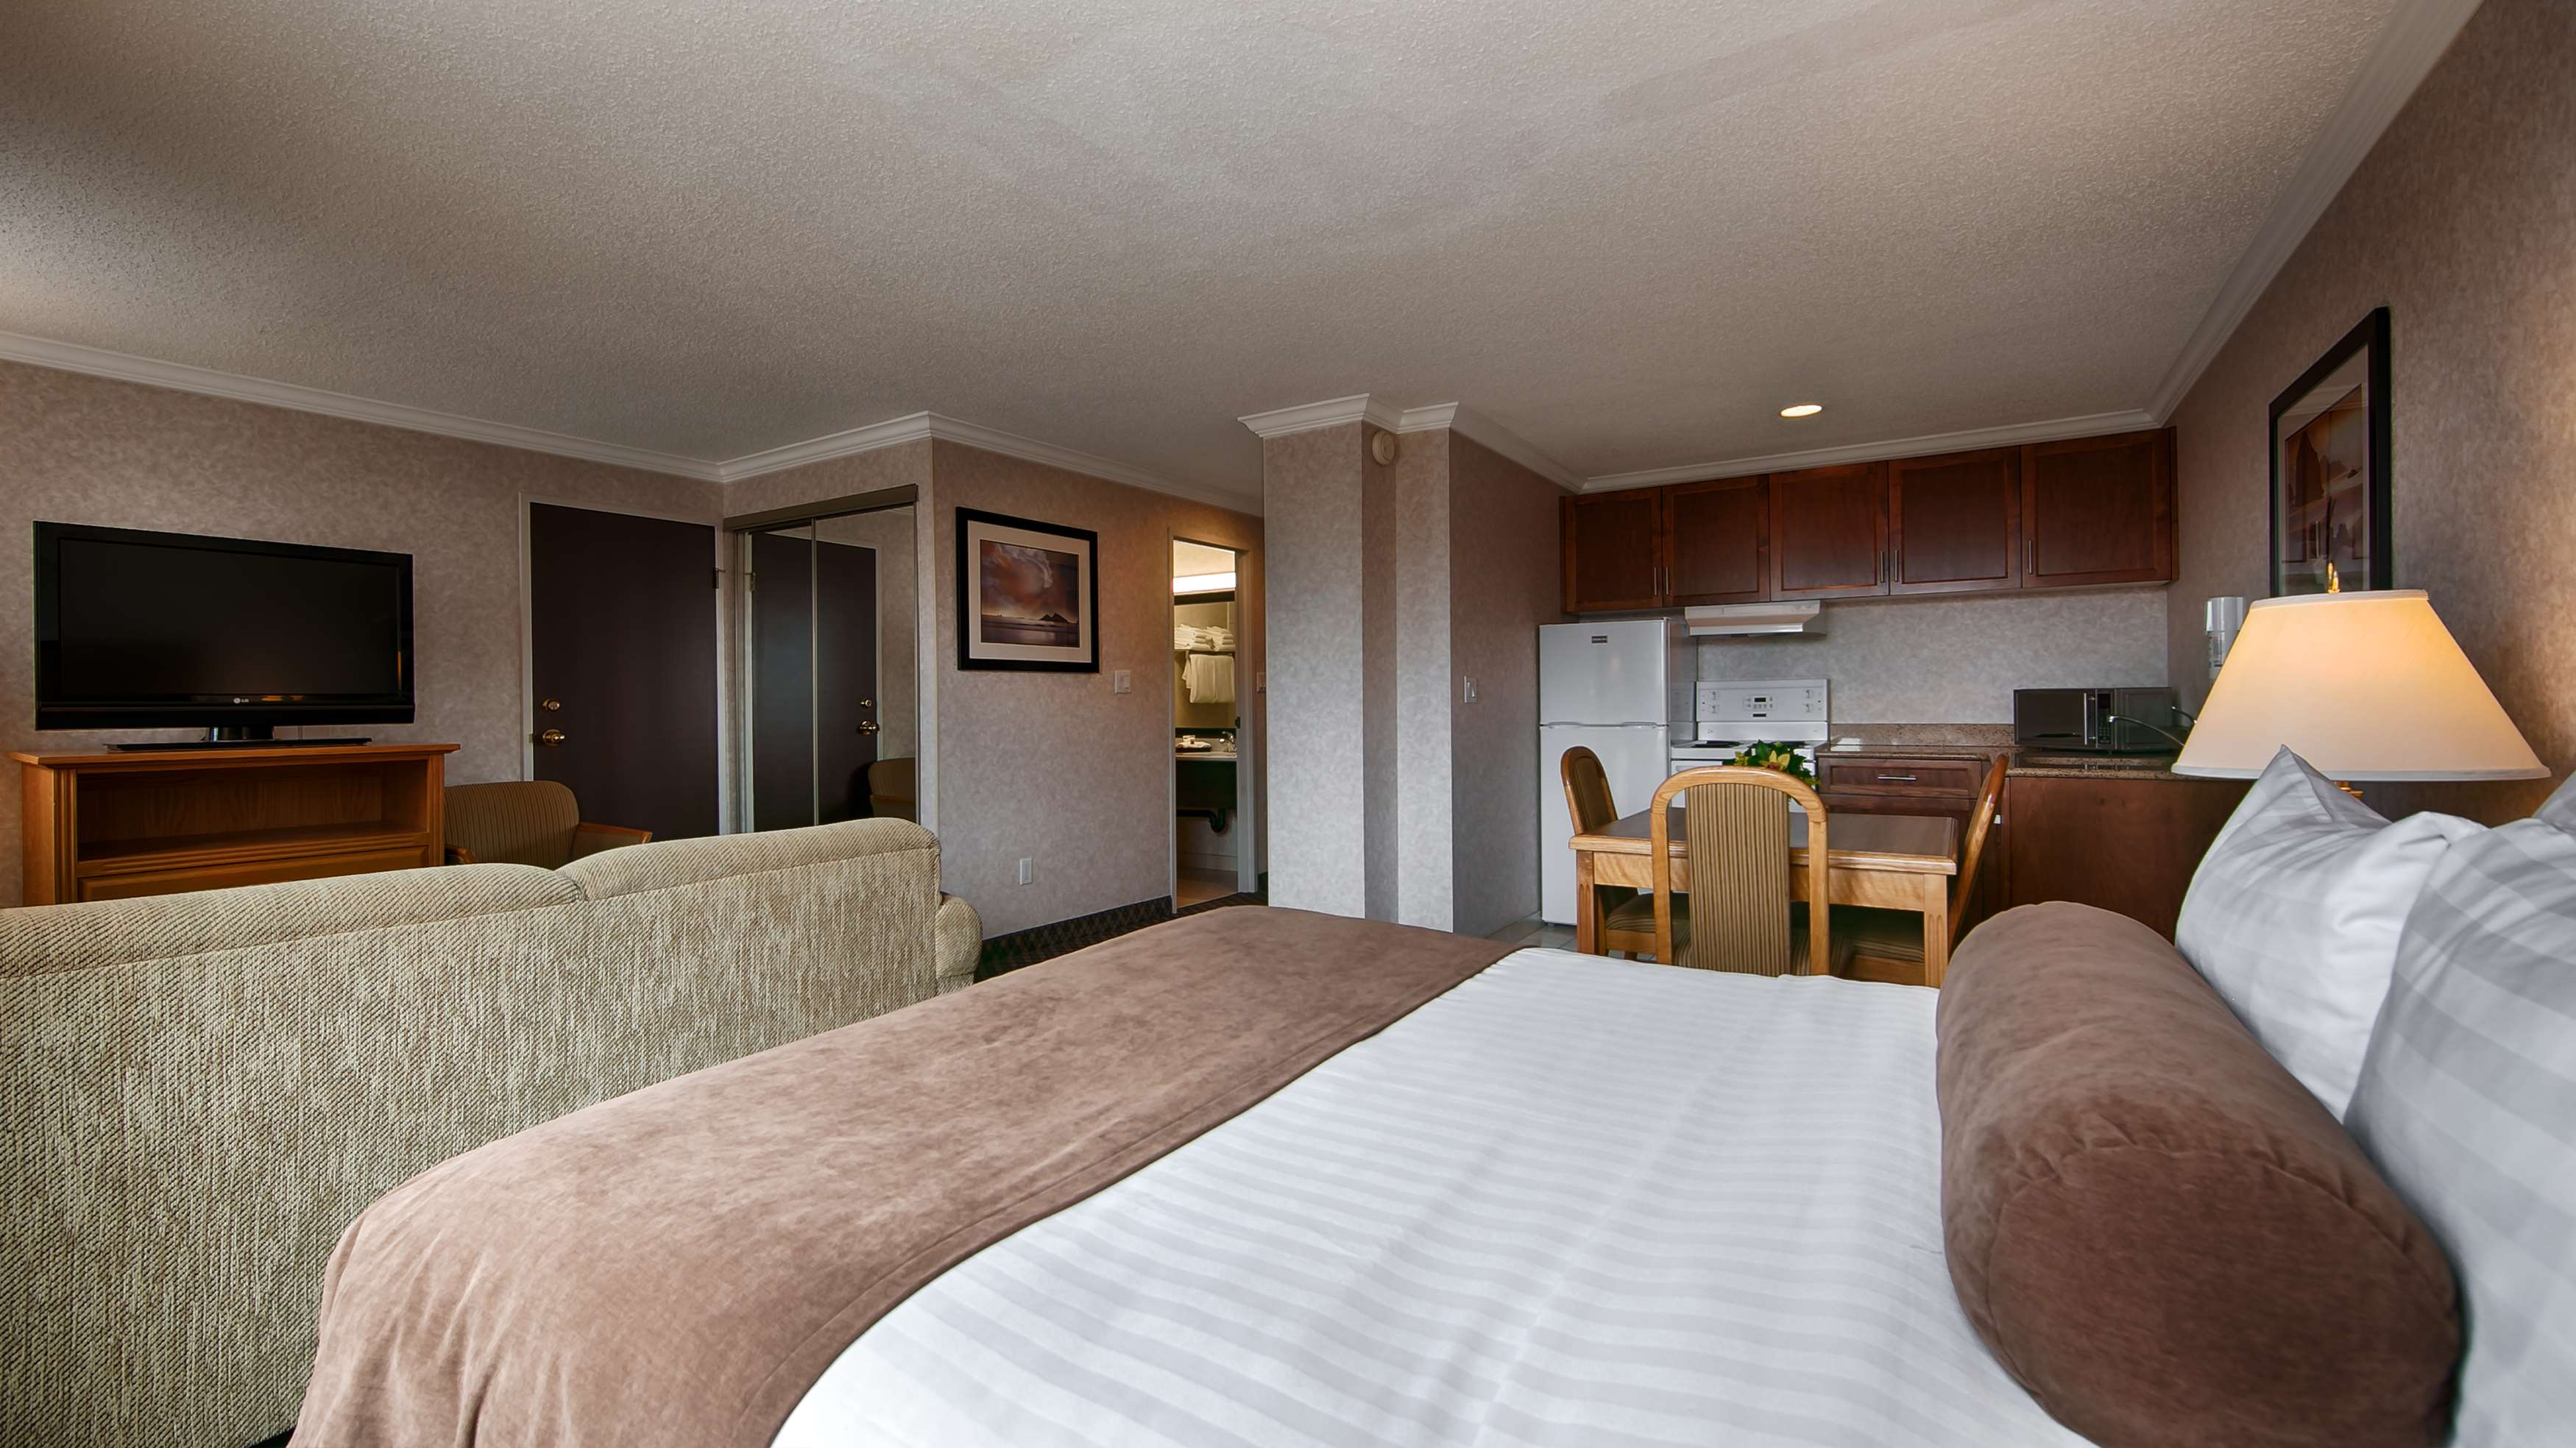 Best Western Plus Carlton Plaza Hotel in Victoria: Studio Queen Room